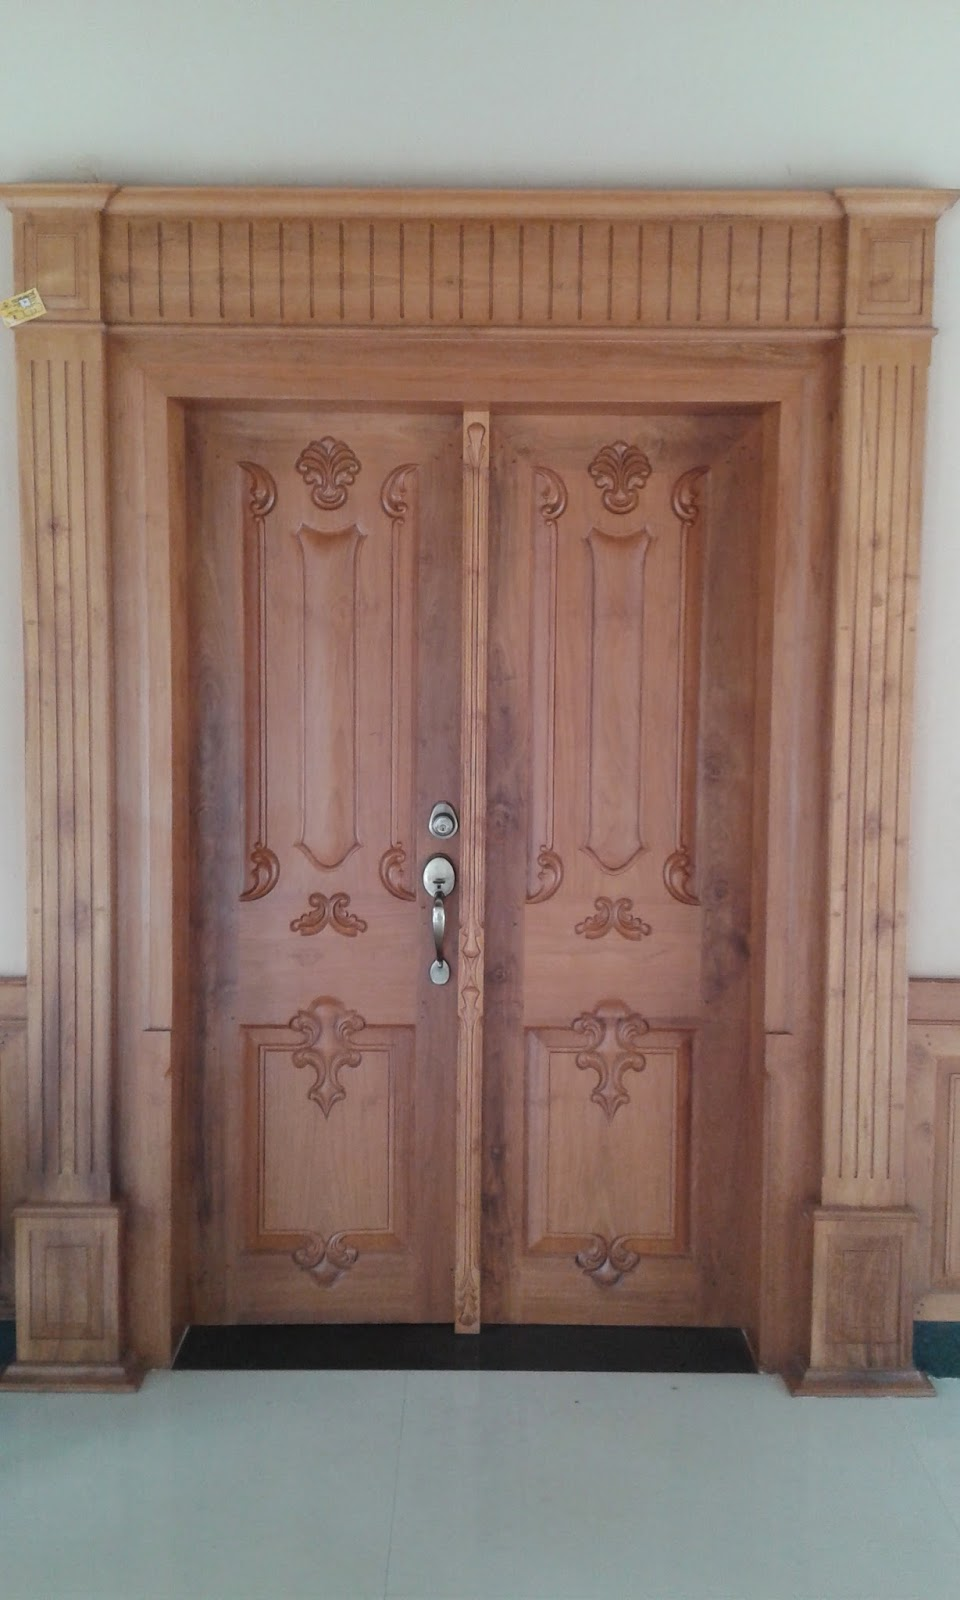 Kerala style carpenter works and designs for Main door with french window